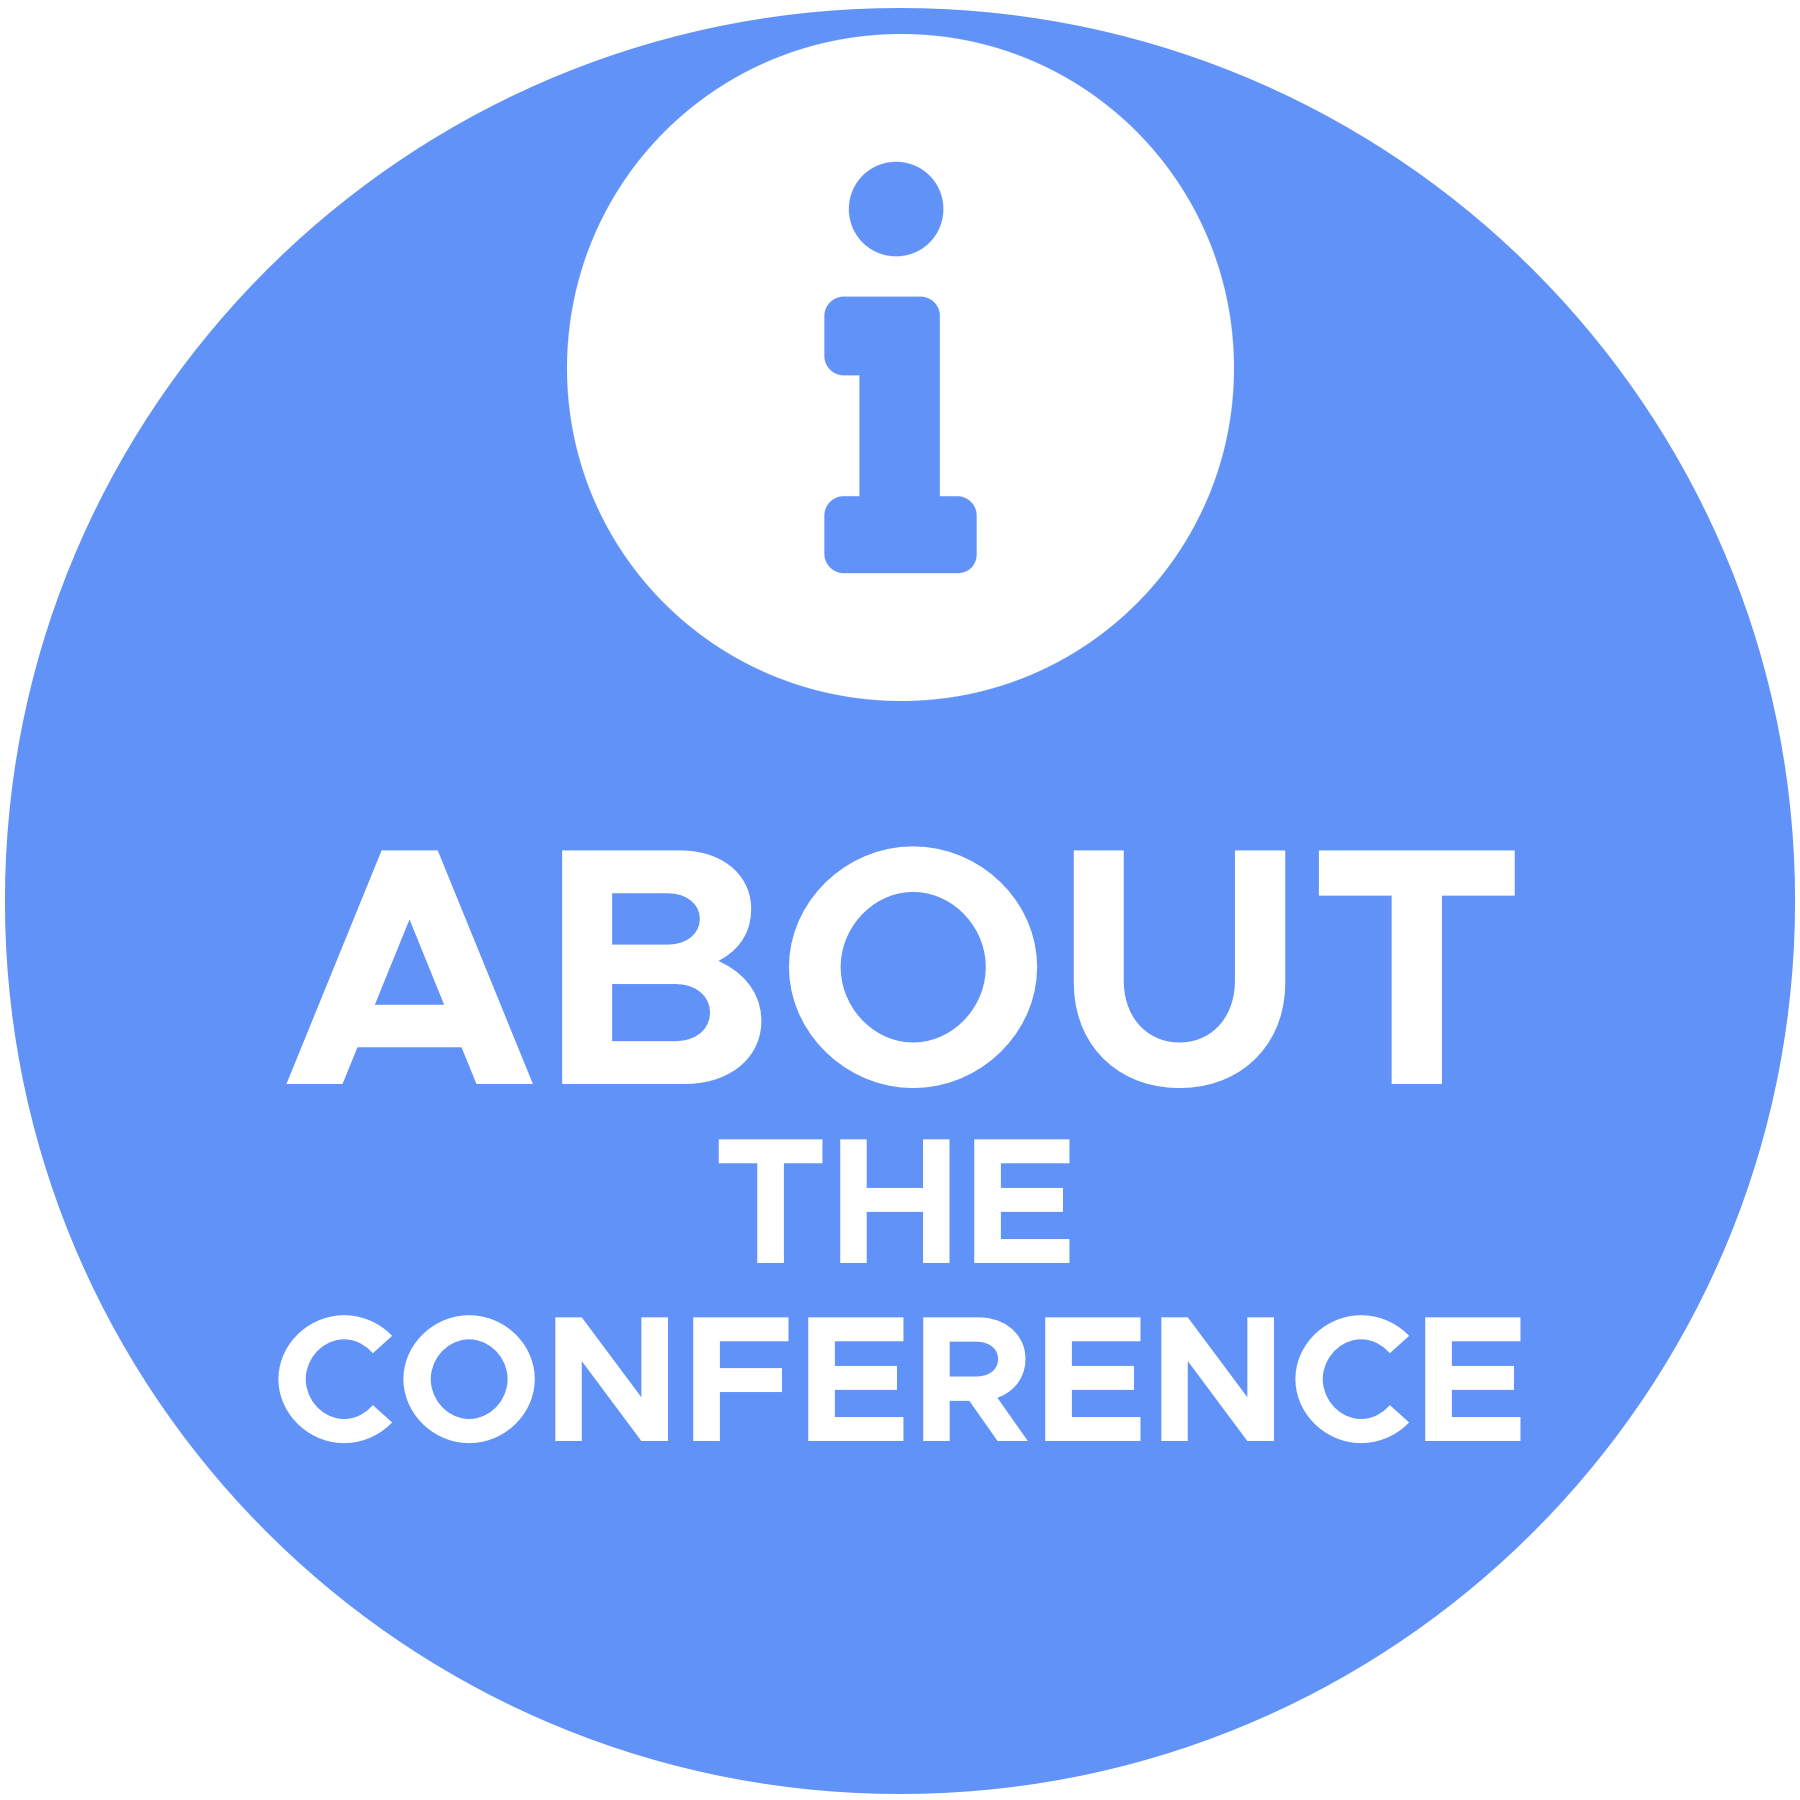 About the Conference